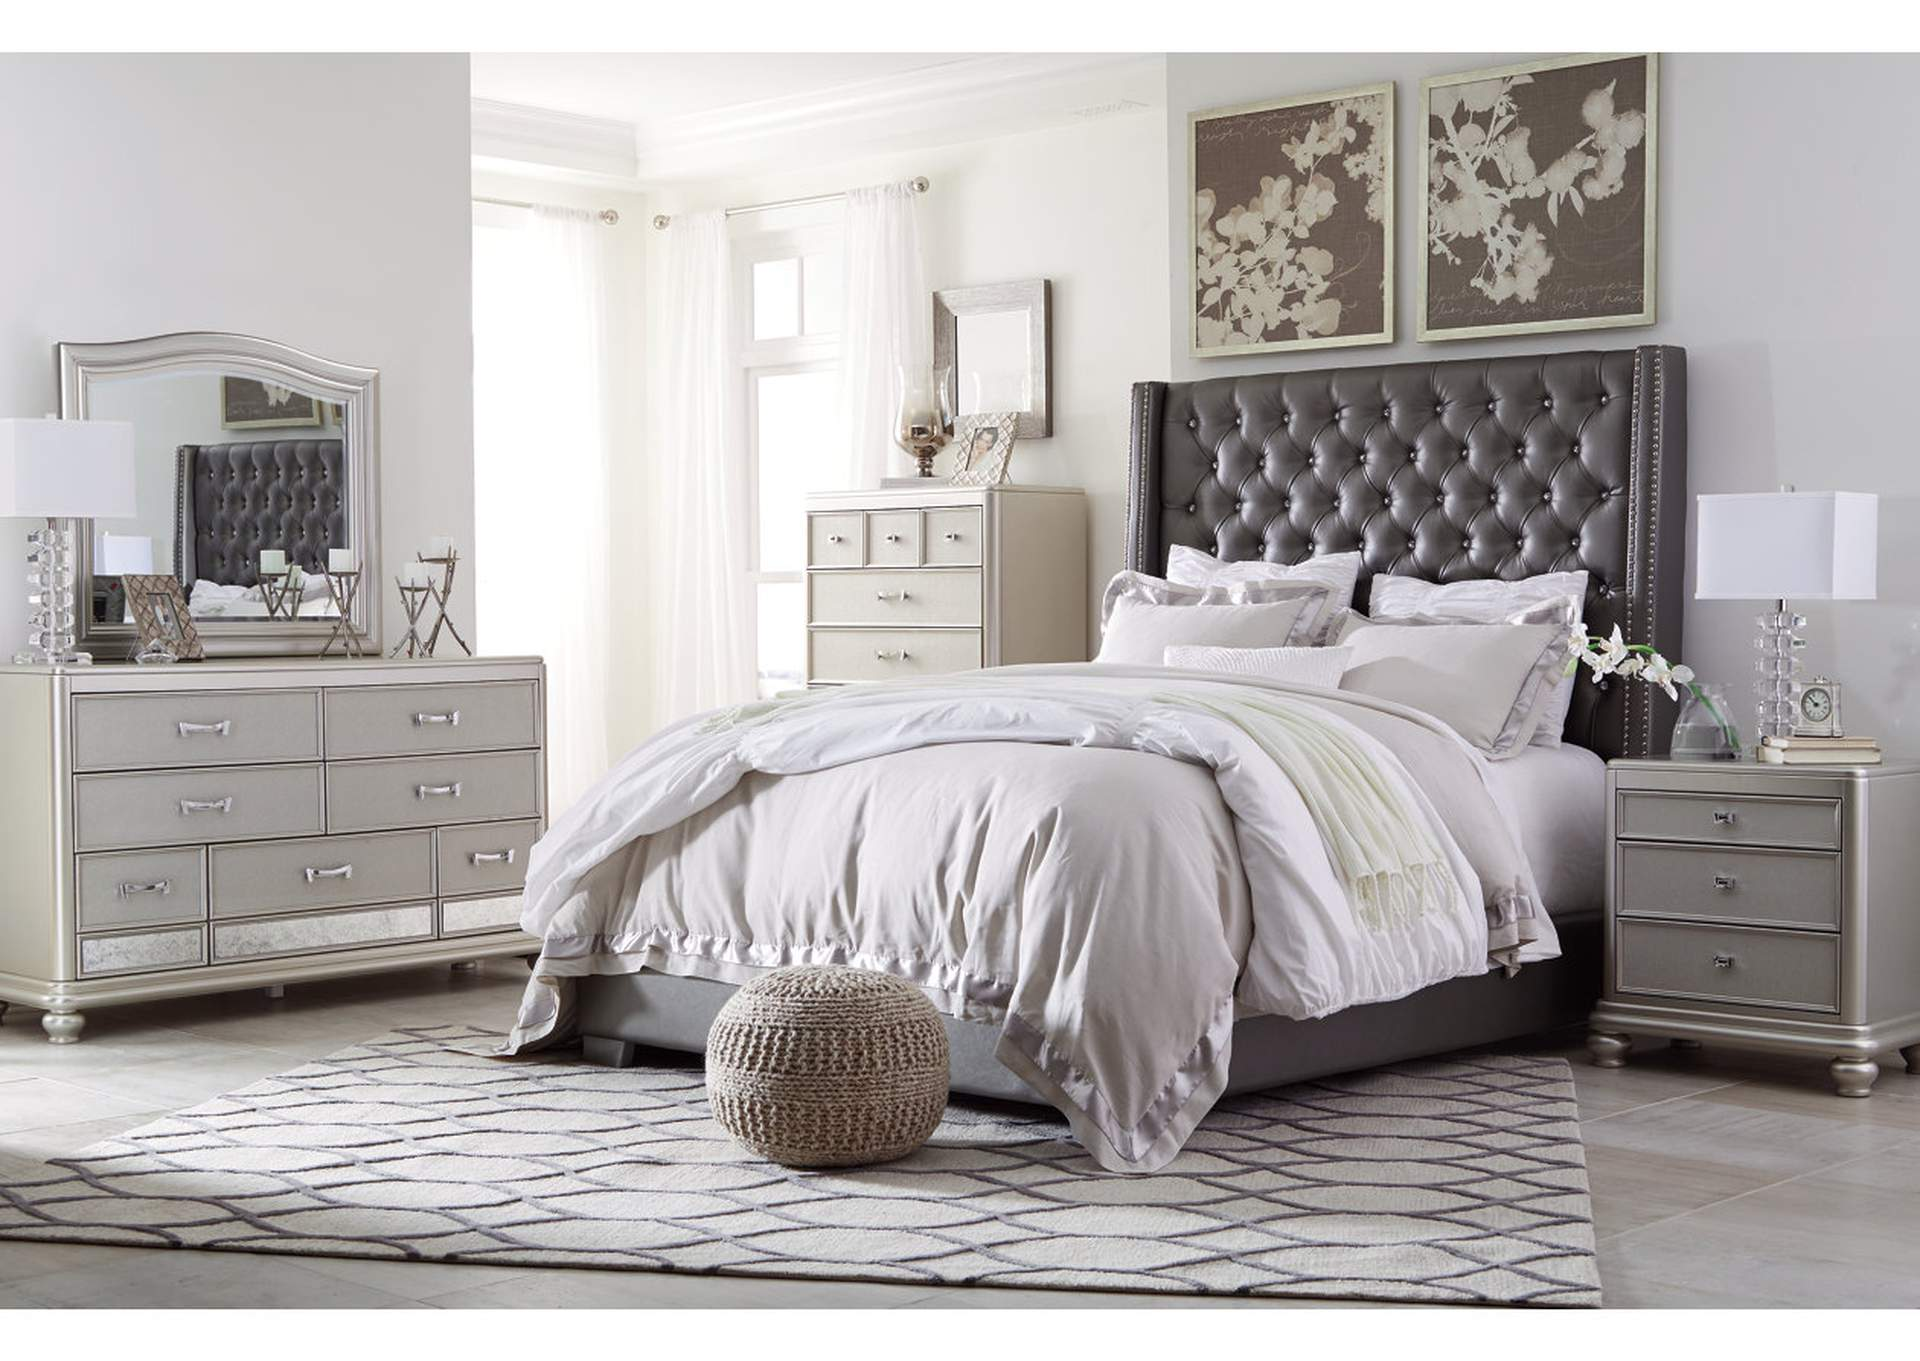 Coralayne Gray King Upholstered Bed w/Dresser, Mirror, Drawer Chest & Nightstand,Signature Design By Ashley